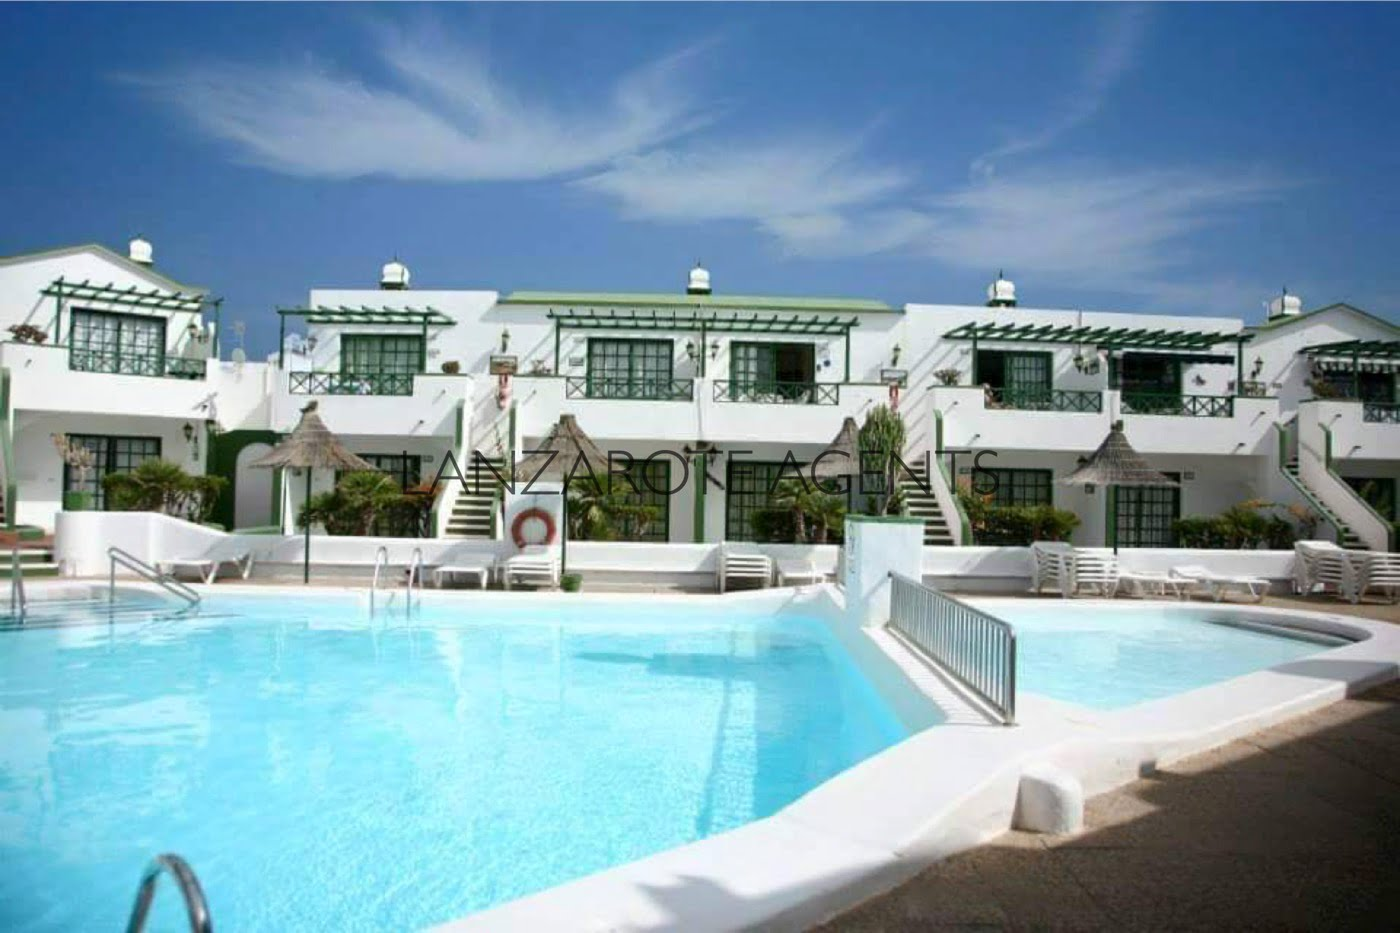 Great Opportunity to Buy a Lovely One Bedroom Apartment on a Complex with Communal Pool.